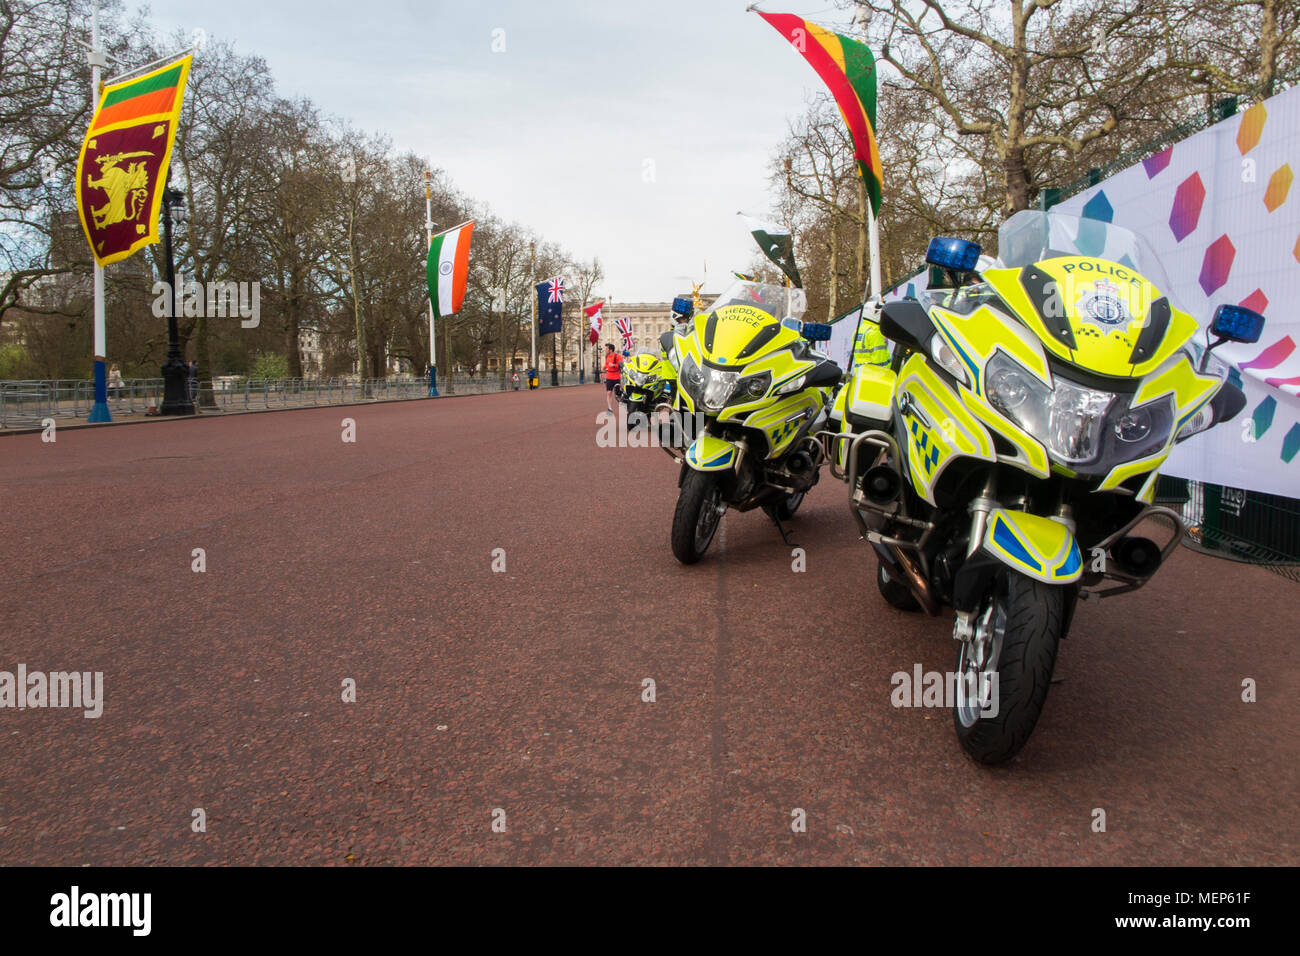 Police motorbikes on The Mall for the Commonwealth Heads of